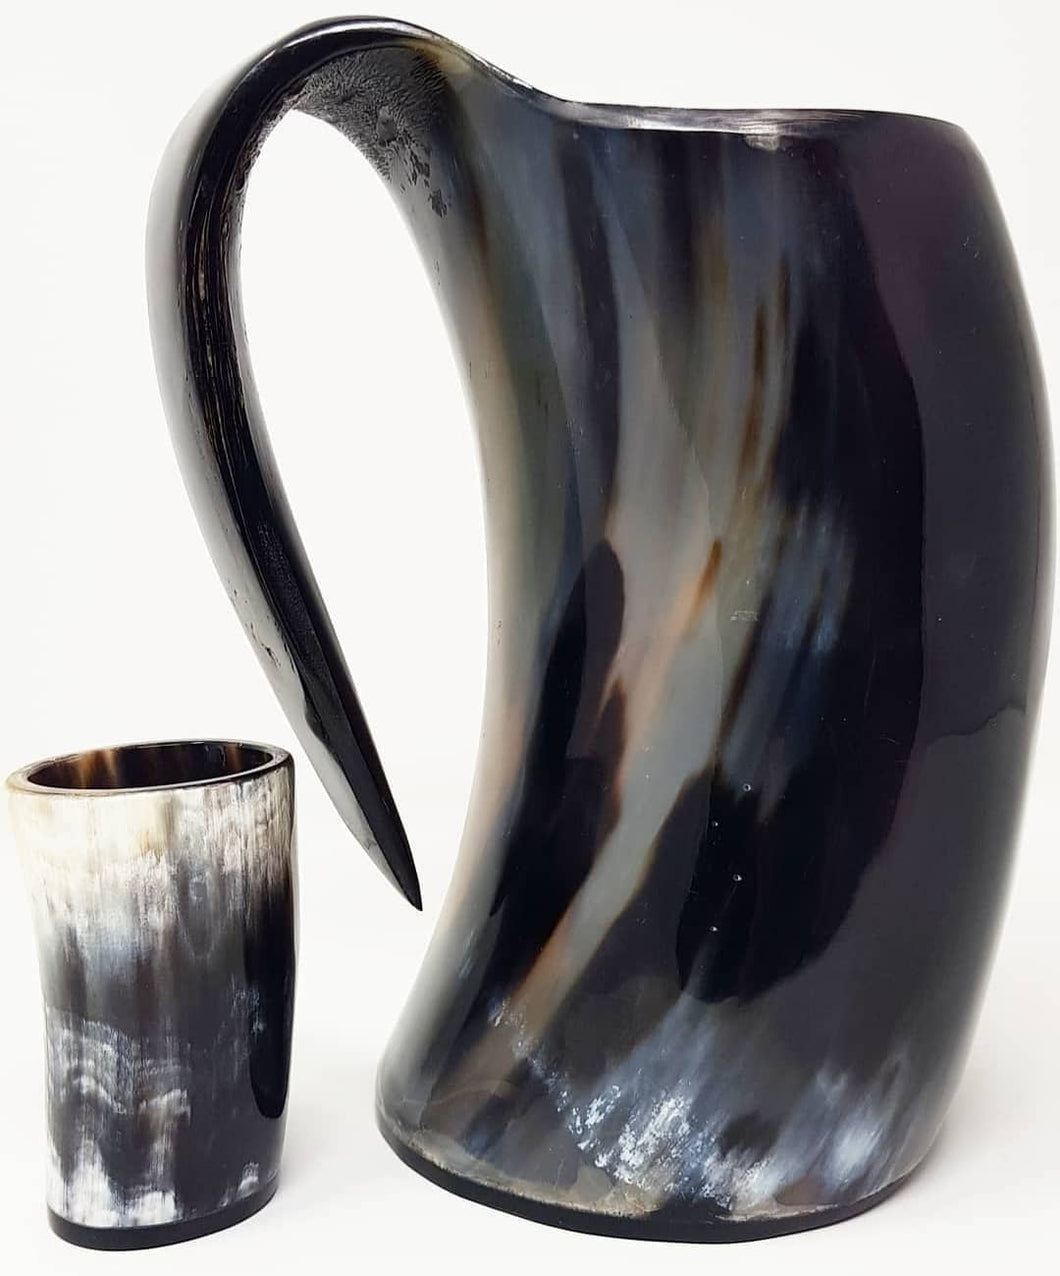 ORIGINDIA The Genuine Handcrafted Authentic Viking Drinking Horn Mug & Free Shot Glass - ORIGINDIA LLC